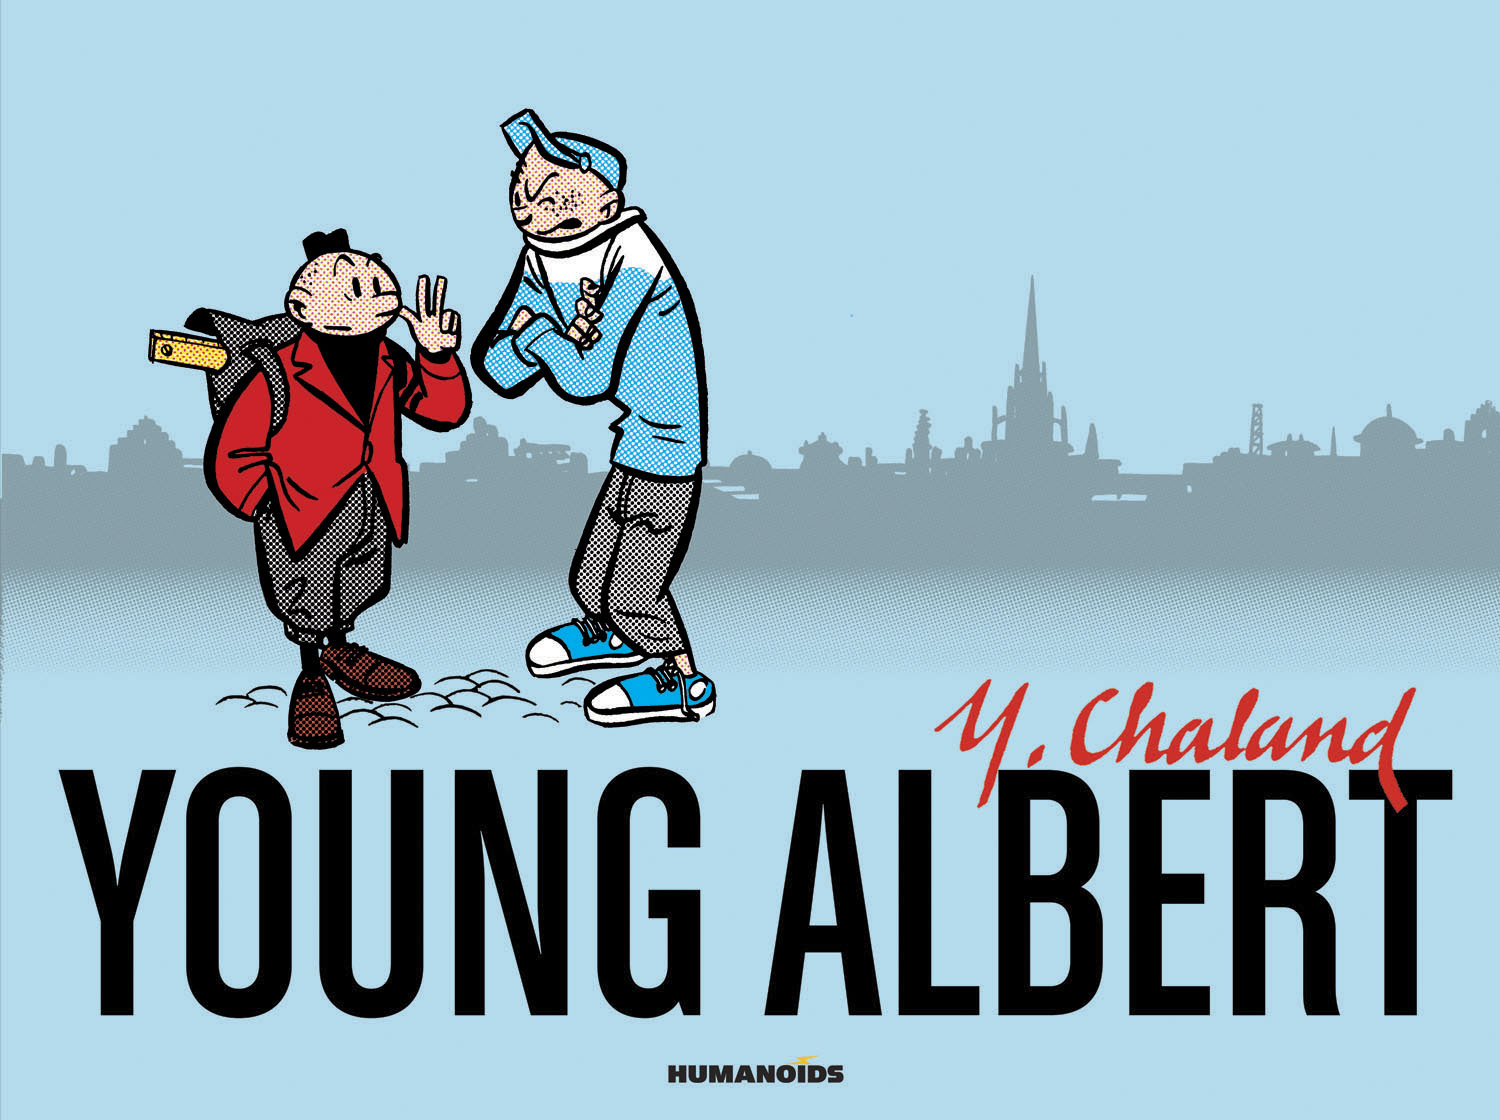 Young Albert - Coffee Table Book